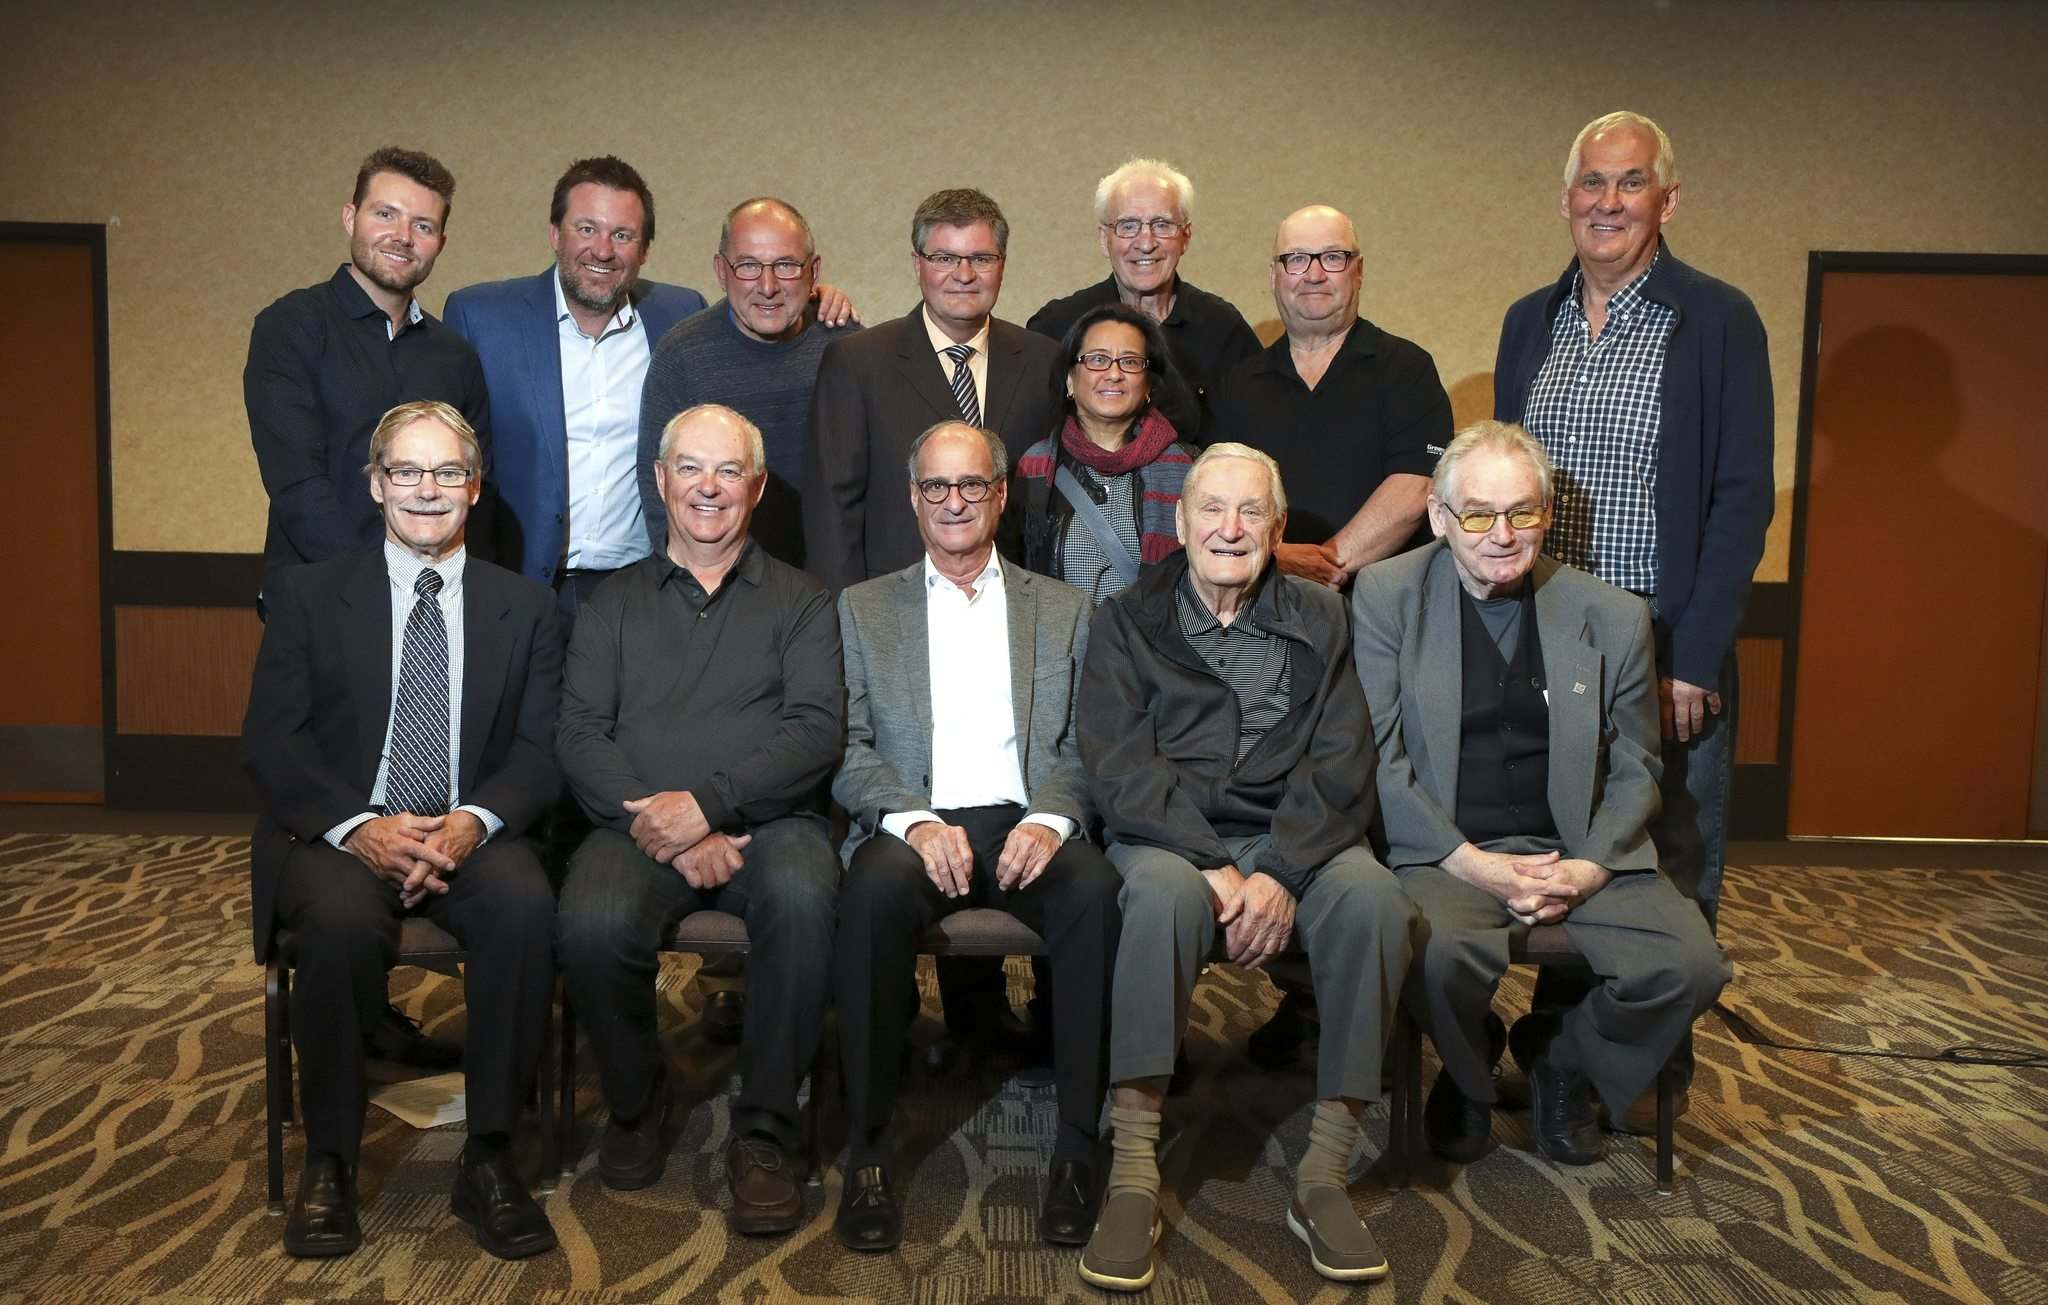 The Manitoba Hockey Hall of Fame announced its 2019 induction class on Thursday. Announcement attendees included (back row, from left): Mick McCrimmon, son of Kelly McCrimmon (builder); Trevor Kidd (player); Larry Bolonchuk (player); Rob Haithwaite (official); Jack Turner (Flin Flon Warriors); Ian Murray, father of Marty Murray (player); Bob Fitchner (player). Middle: Susana Yuen (player). Front, from left: Rod Lindquist (St. Boniface Mohawks); Don Yake, father of Terry Yake (player); Barry Shenkarow (builder); Ken Saunders (St. Boniface Canadiens); and Bob (Doc) Holliday (media).